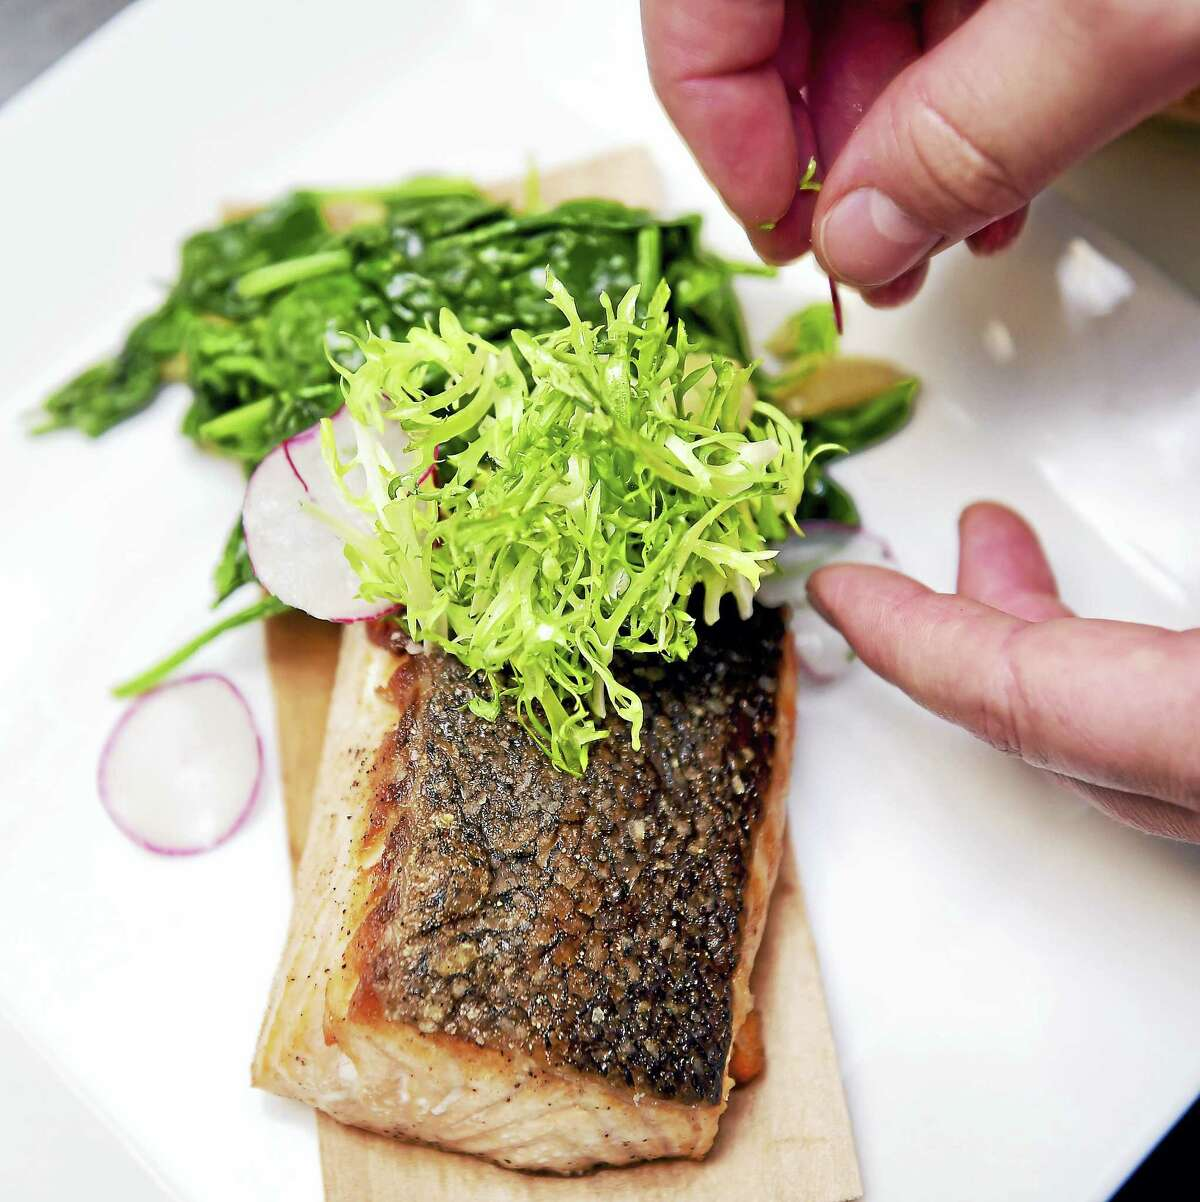 Executive Chef Todd Ruiz of John Davenport's at the Top of the Park prepares cedar plank salmon with garlic spinach topped with a frisee and radish salad.